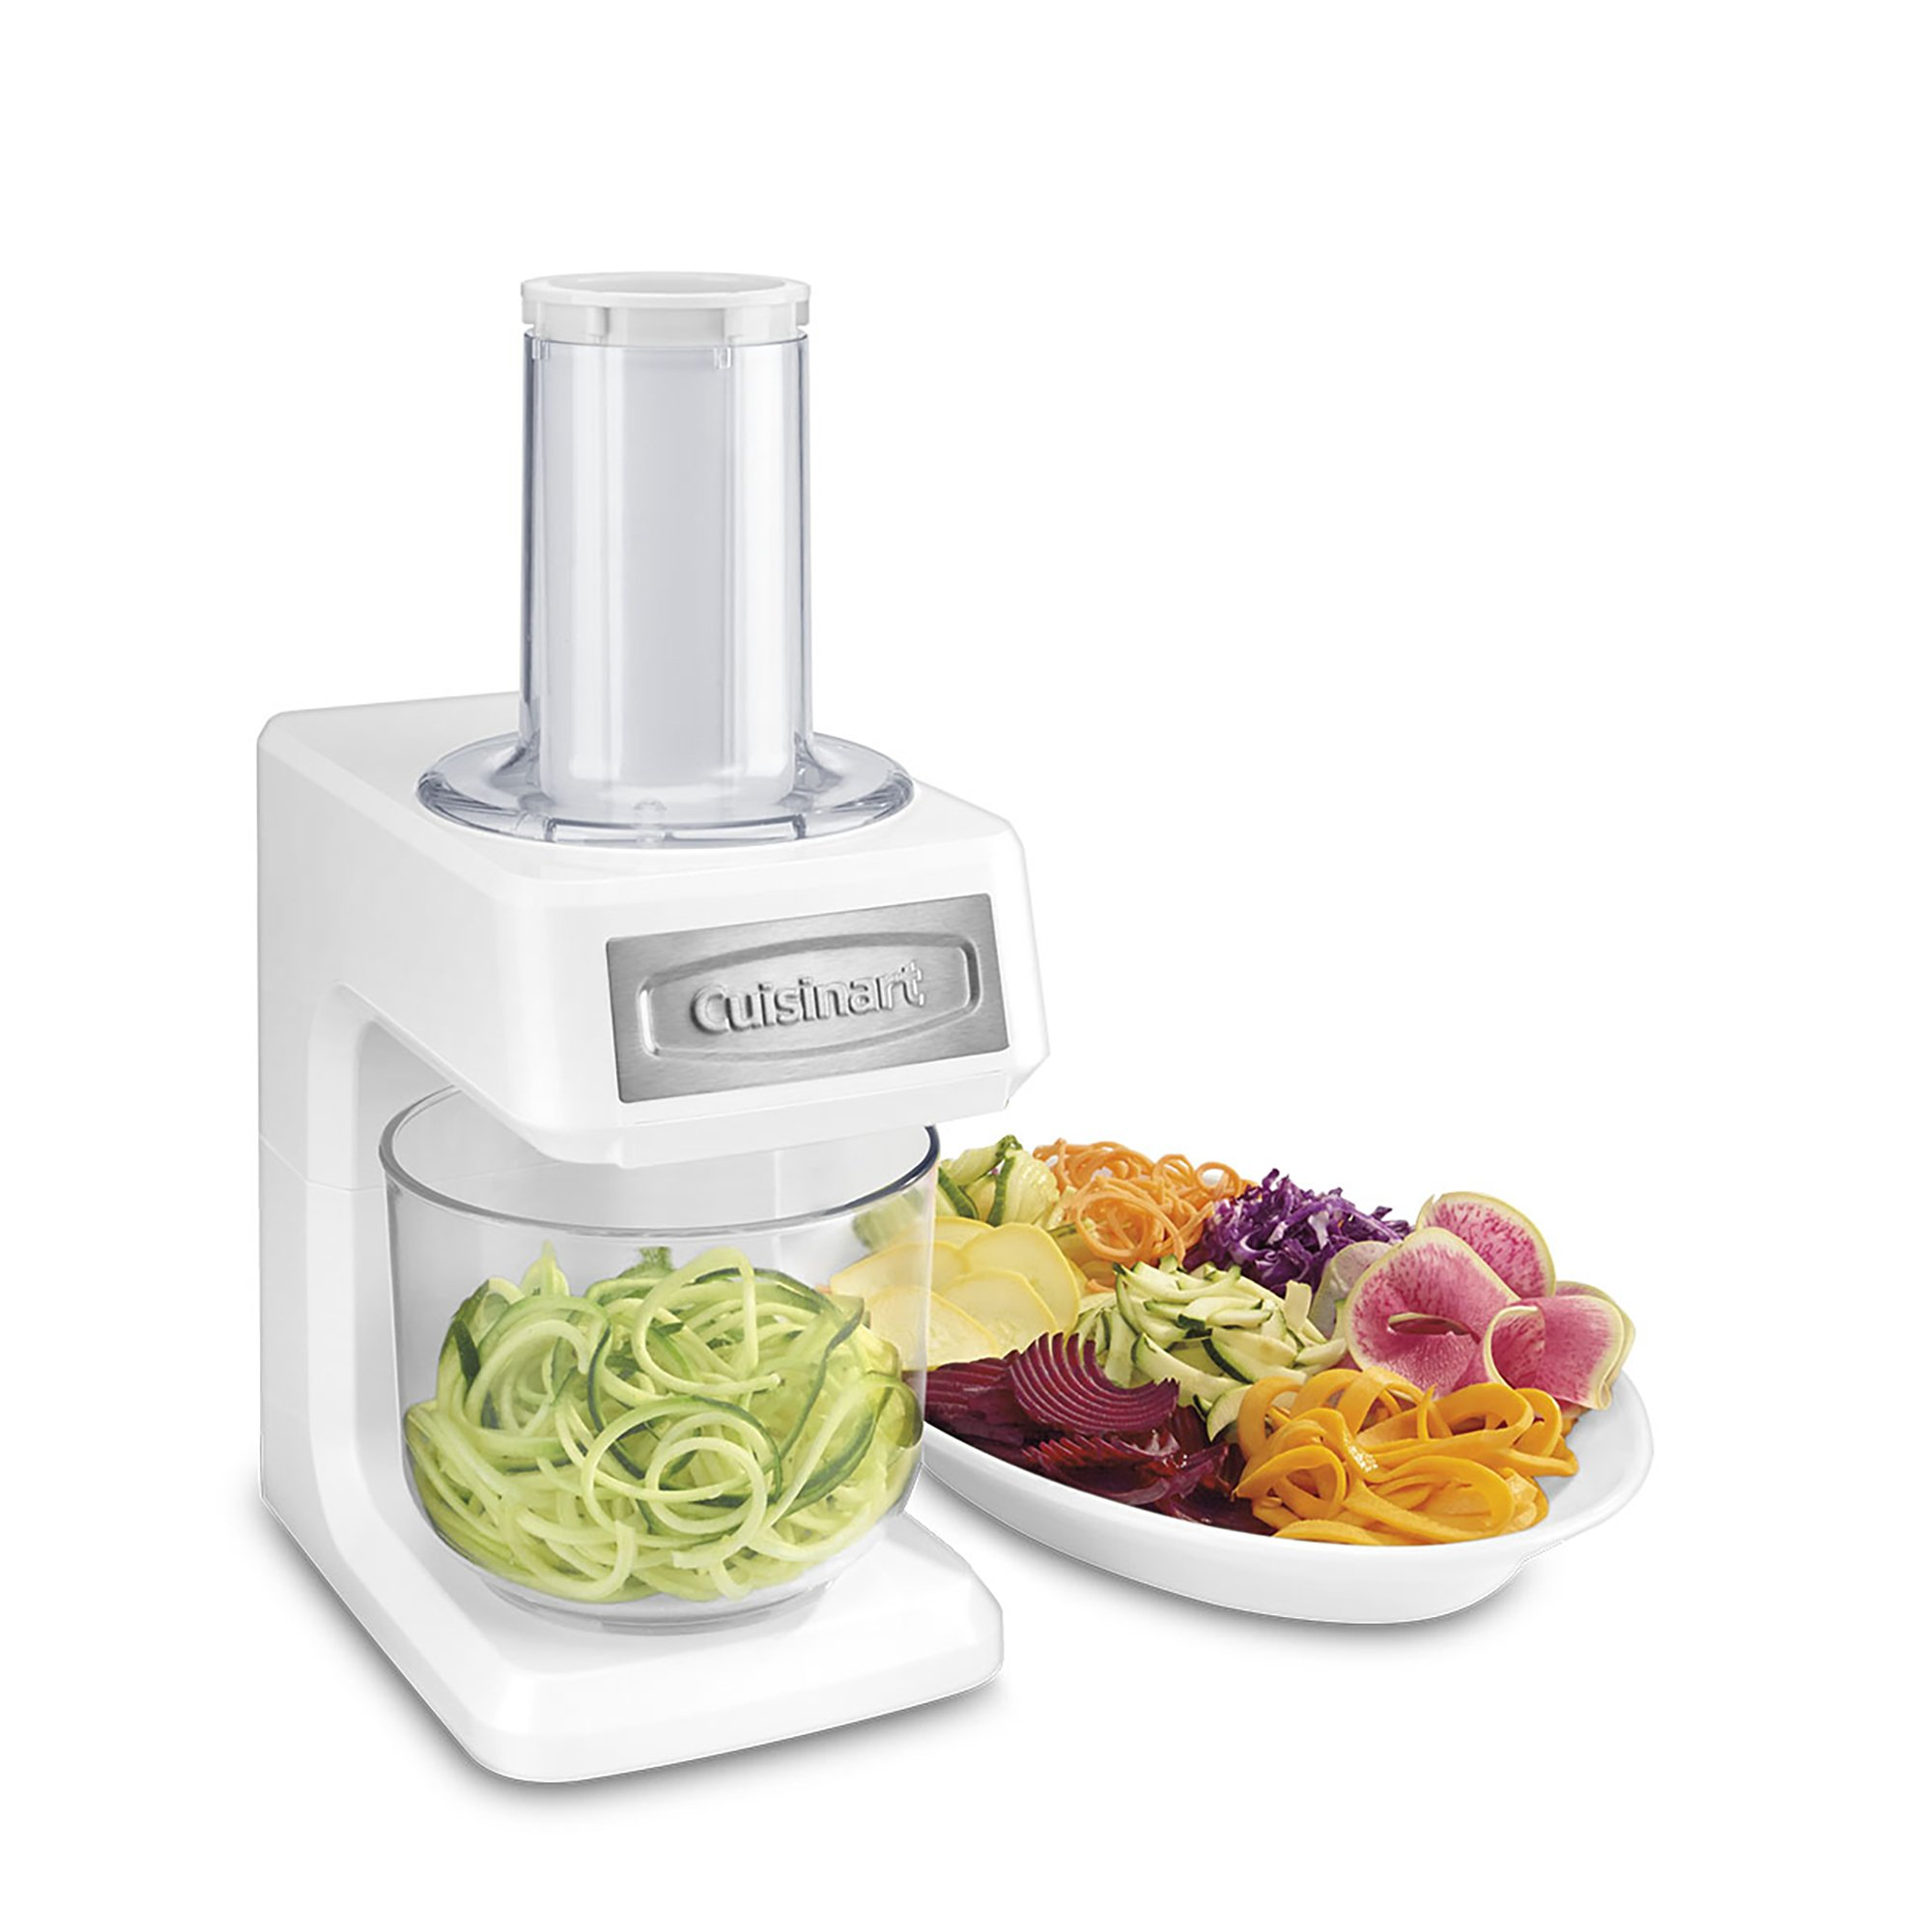 Cuisinart SSL 100 Express Shredder Spiralizer